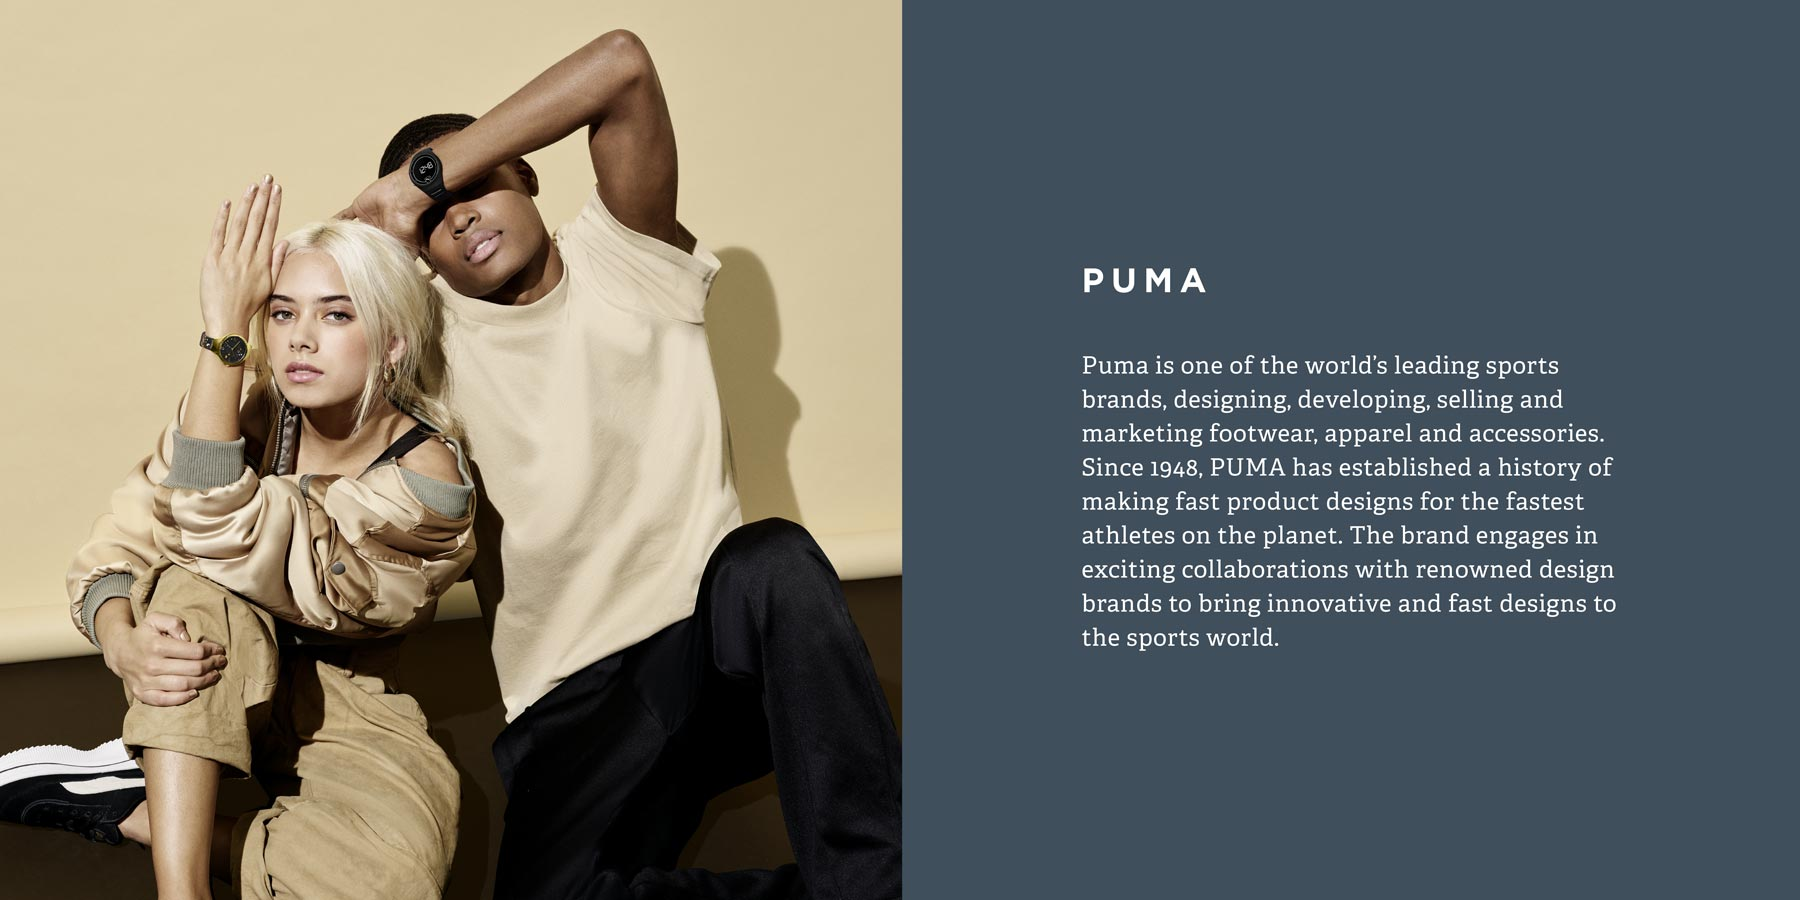 Puma is one of the world's leading sports brands, designing, developing, selling and marketing footwear, apparel and accessories.